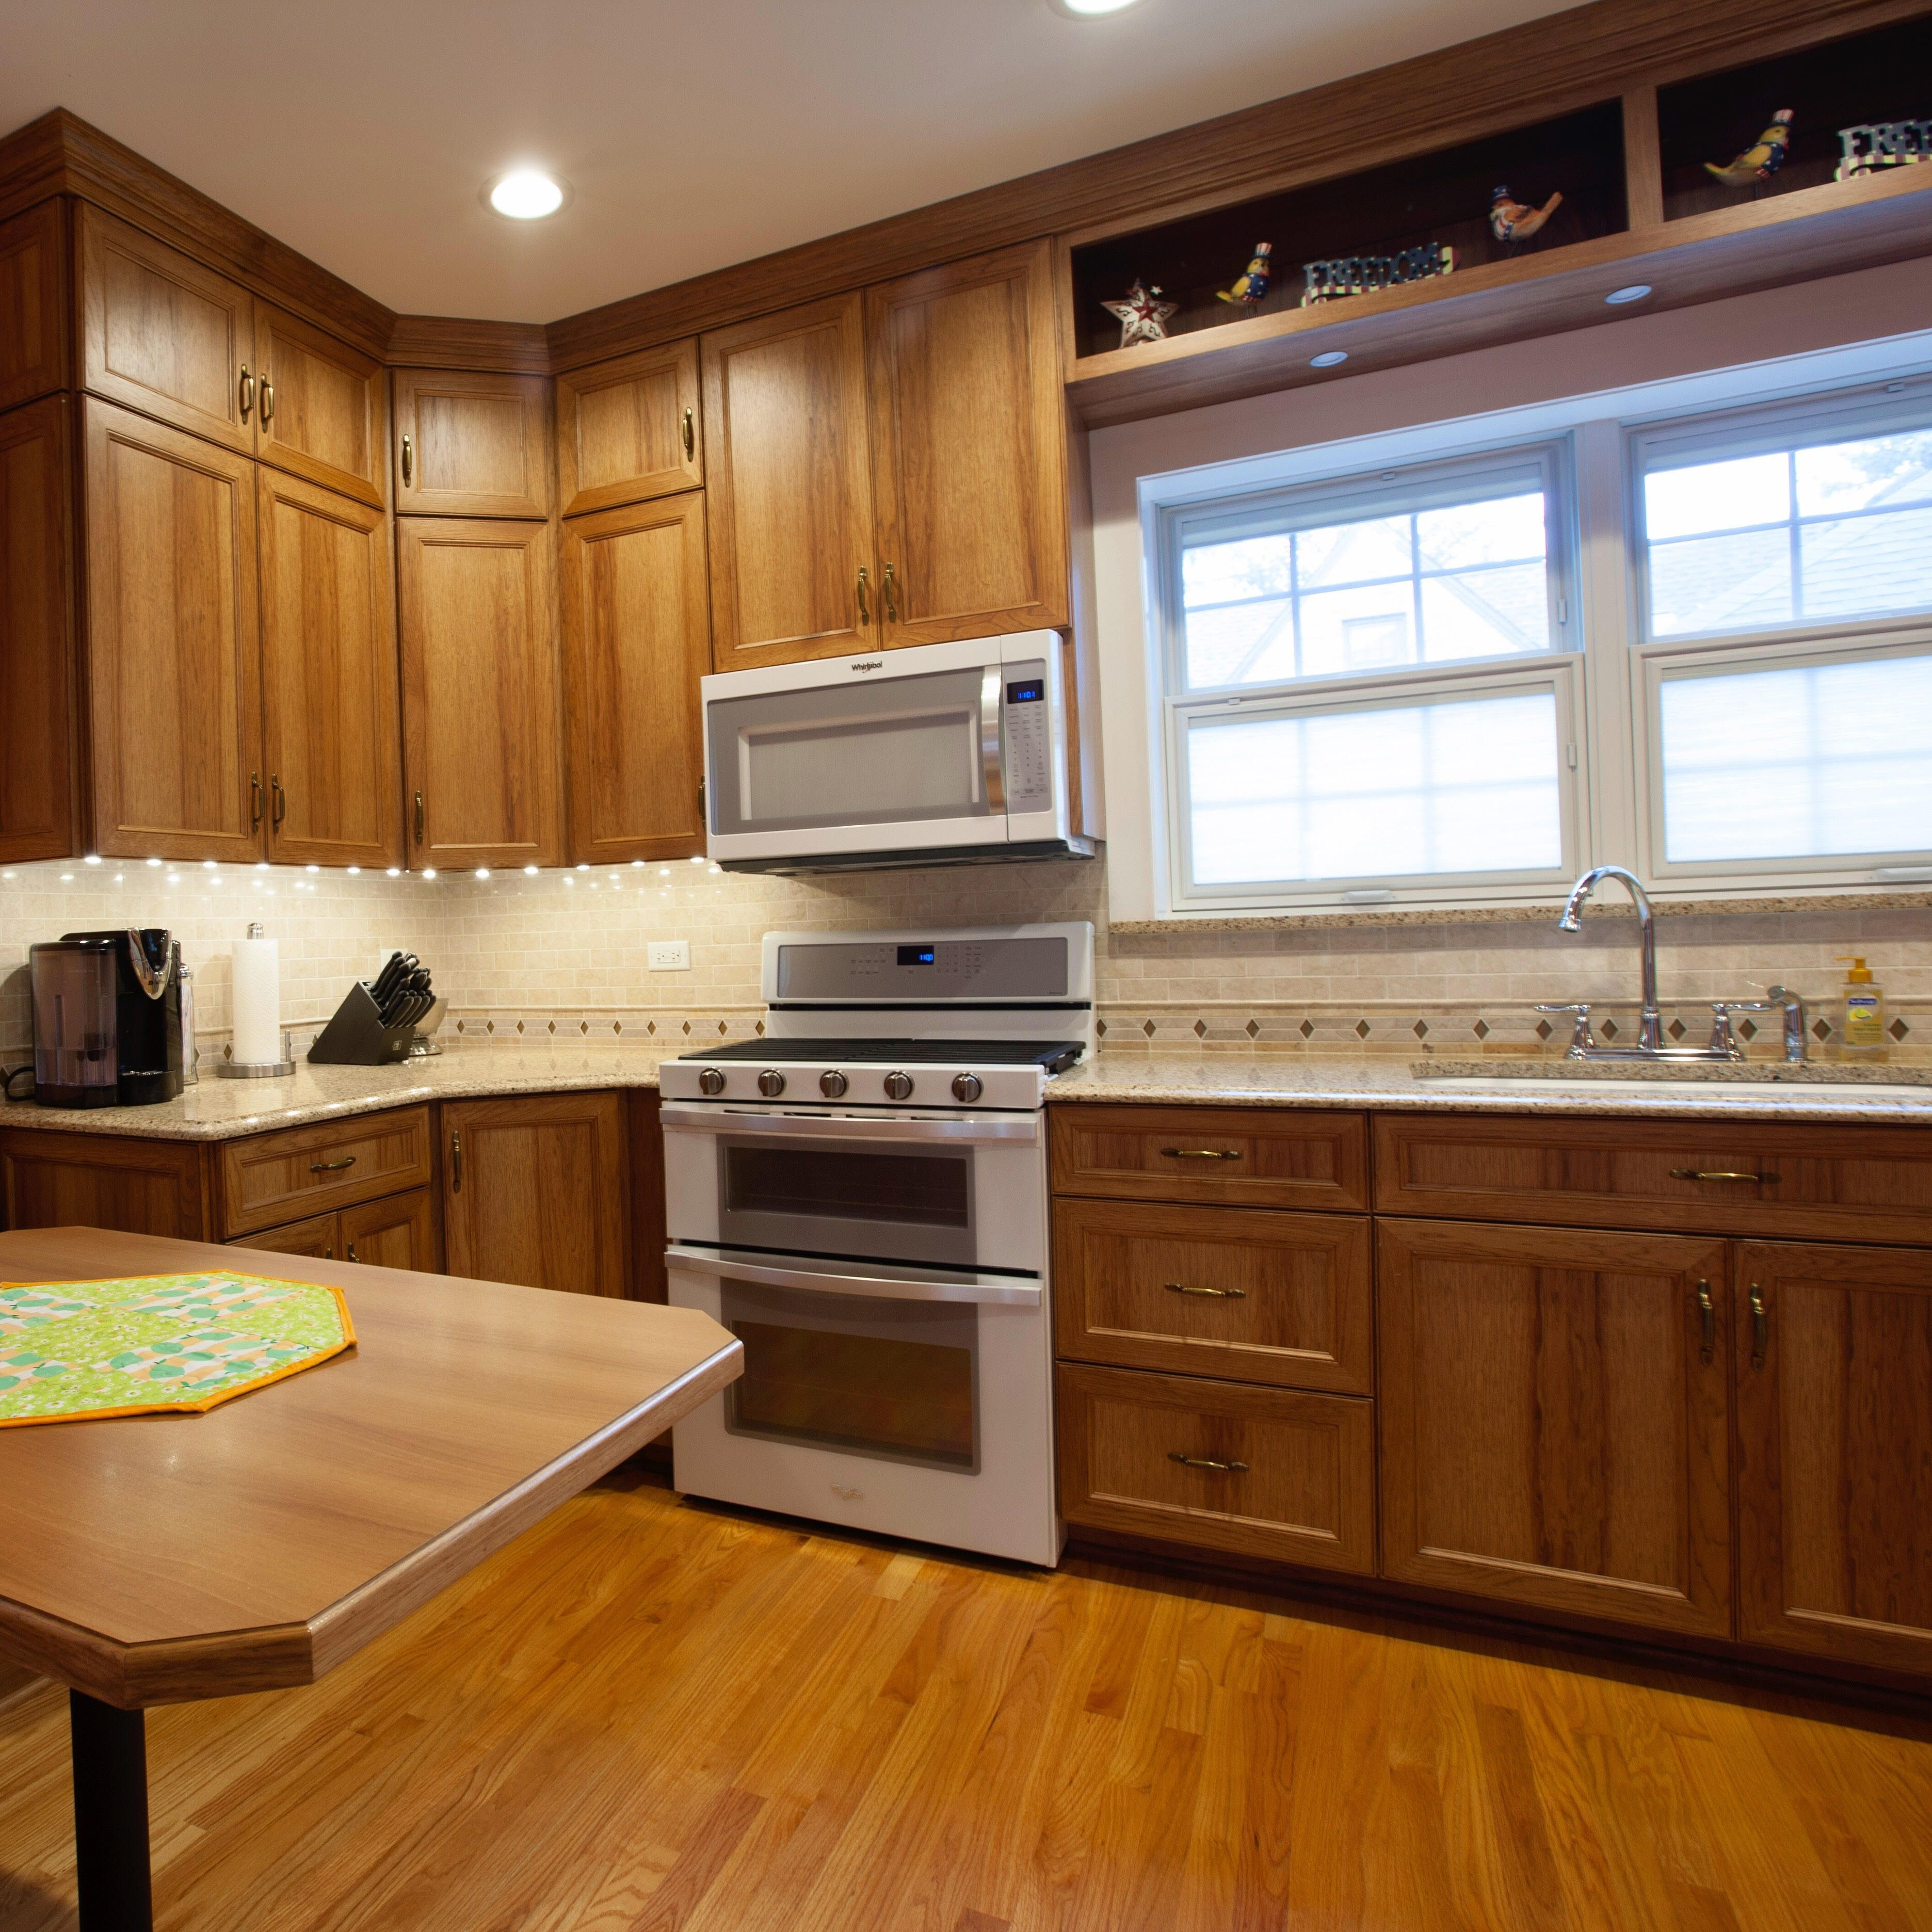 How About Hickory Did You Know That Tri Star Offers Over 10 Different Wood Species Selections For Your Cu Home Improvement Companies Quality Cabinets Cabinet